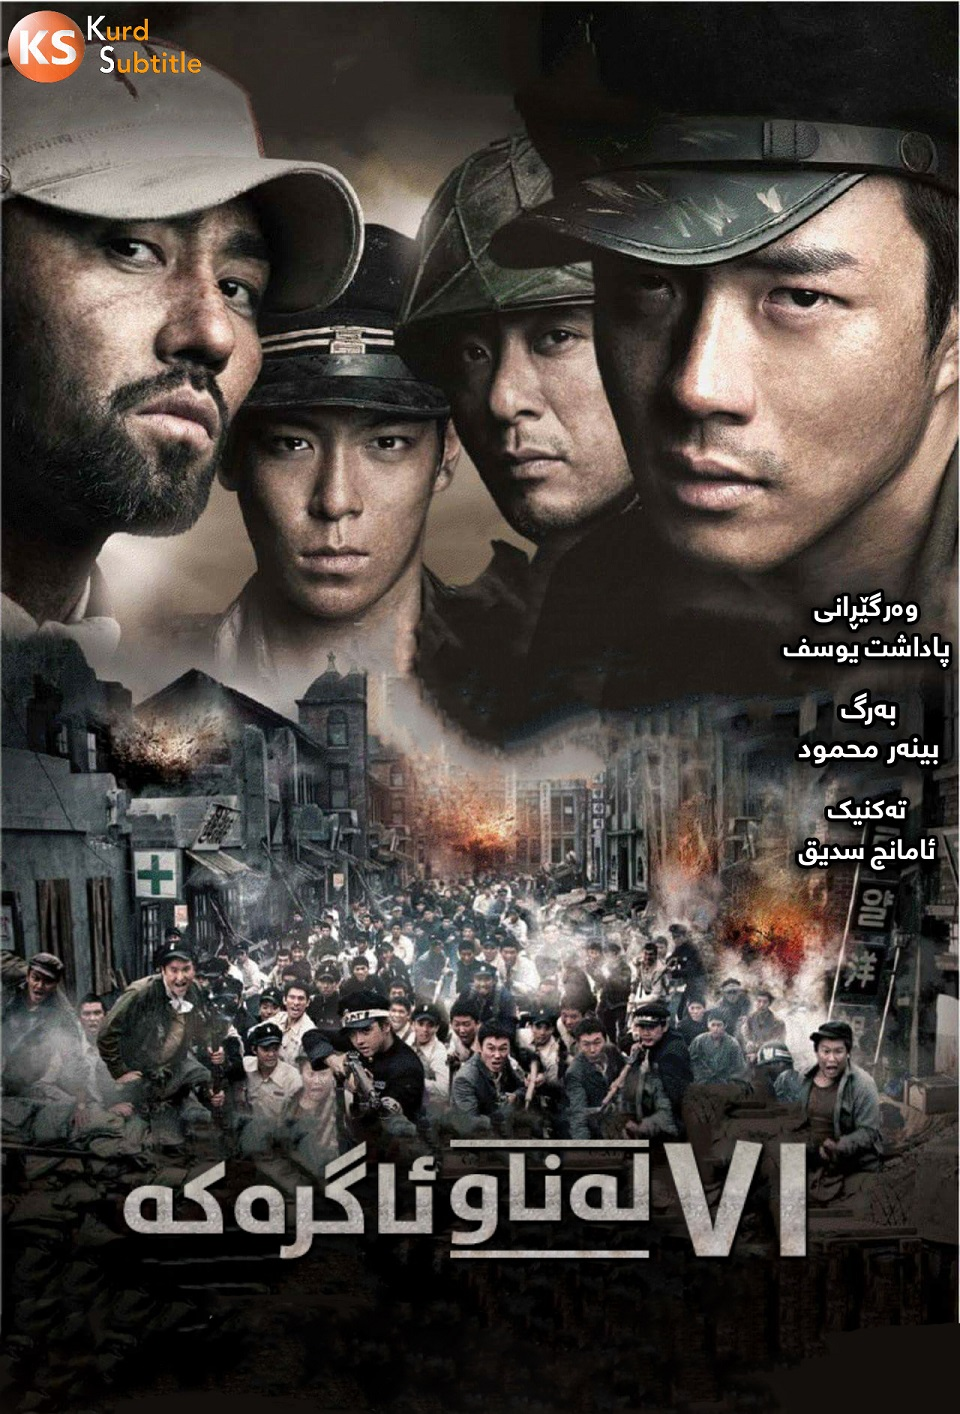 71: Into the Fire kurdish poster